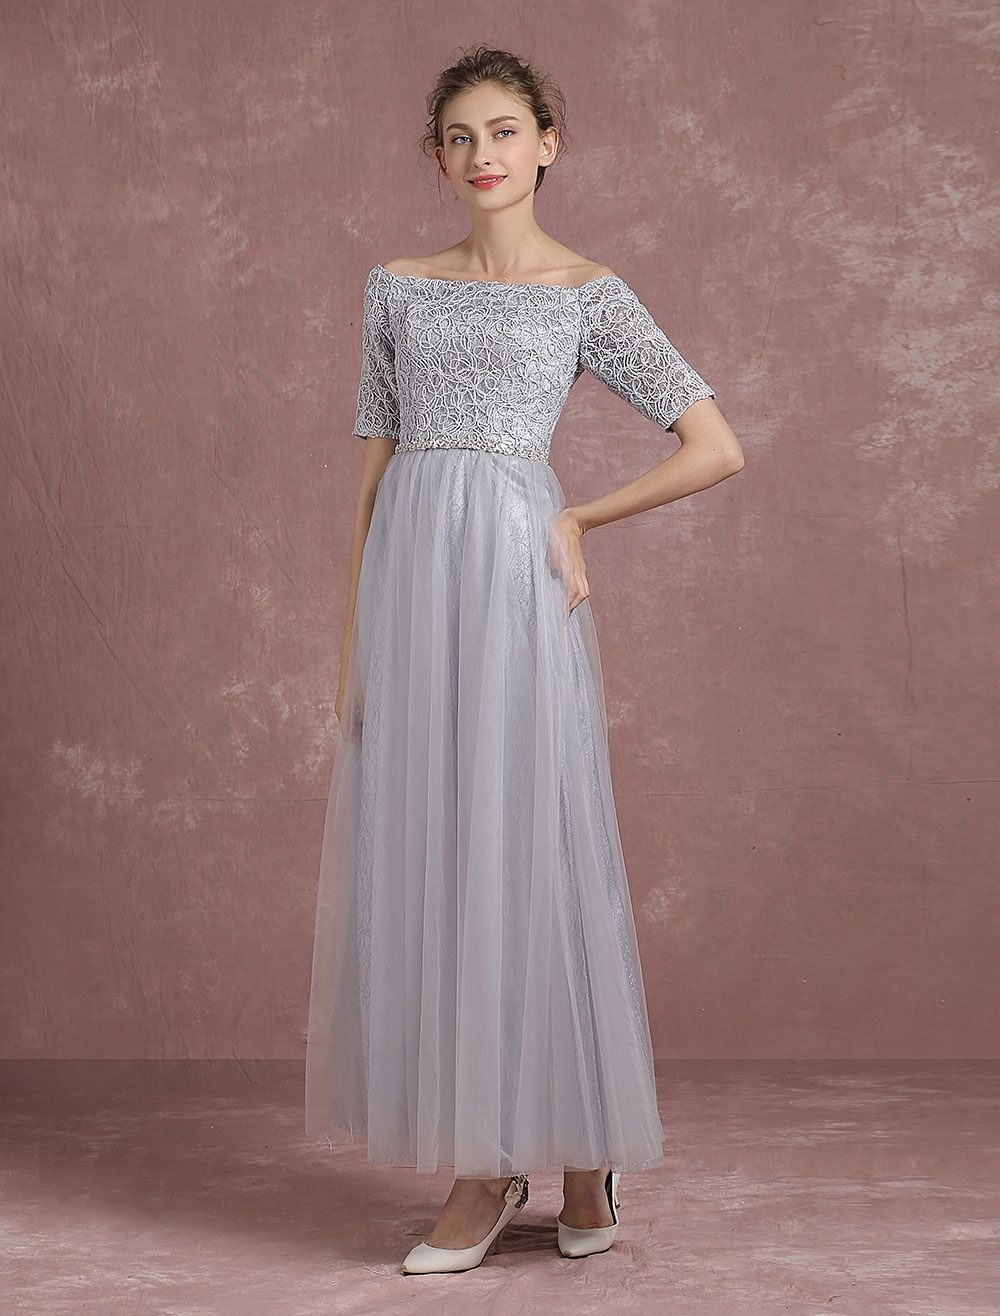 029dfb380e Off The Shoulder Evening Dresses Grey Tulle Mother Of The Bride Dresses  Half Sleeve Lace Up ...